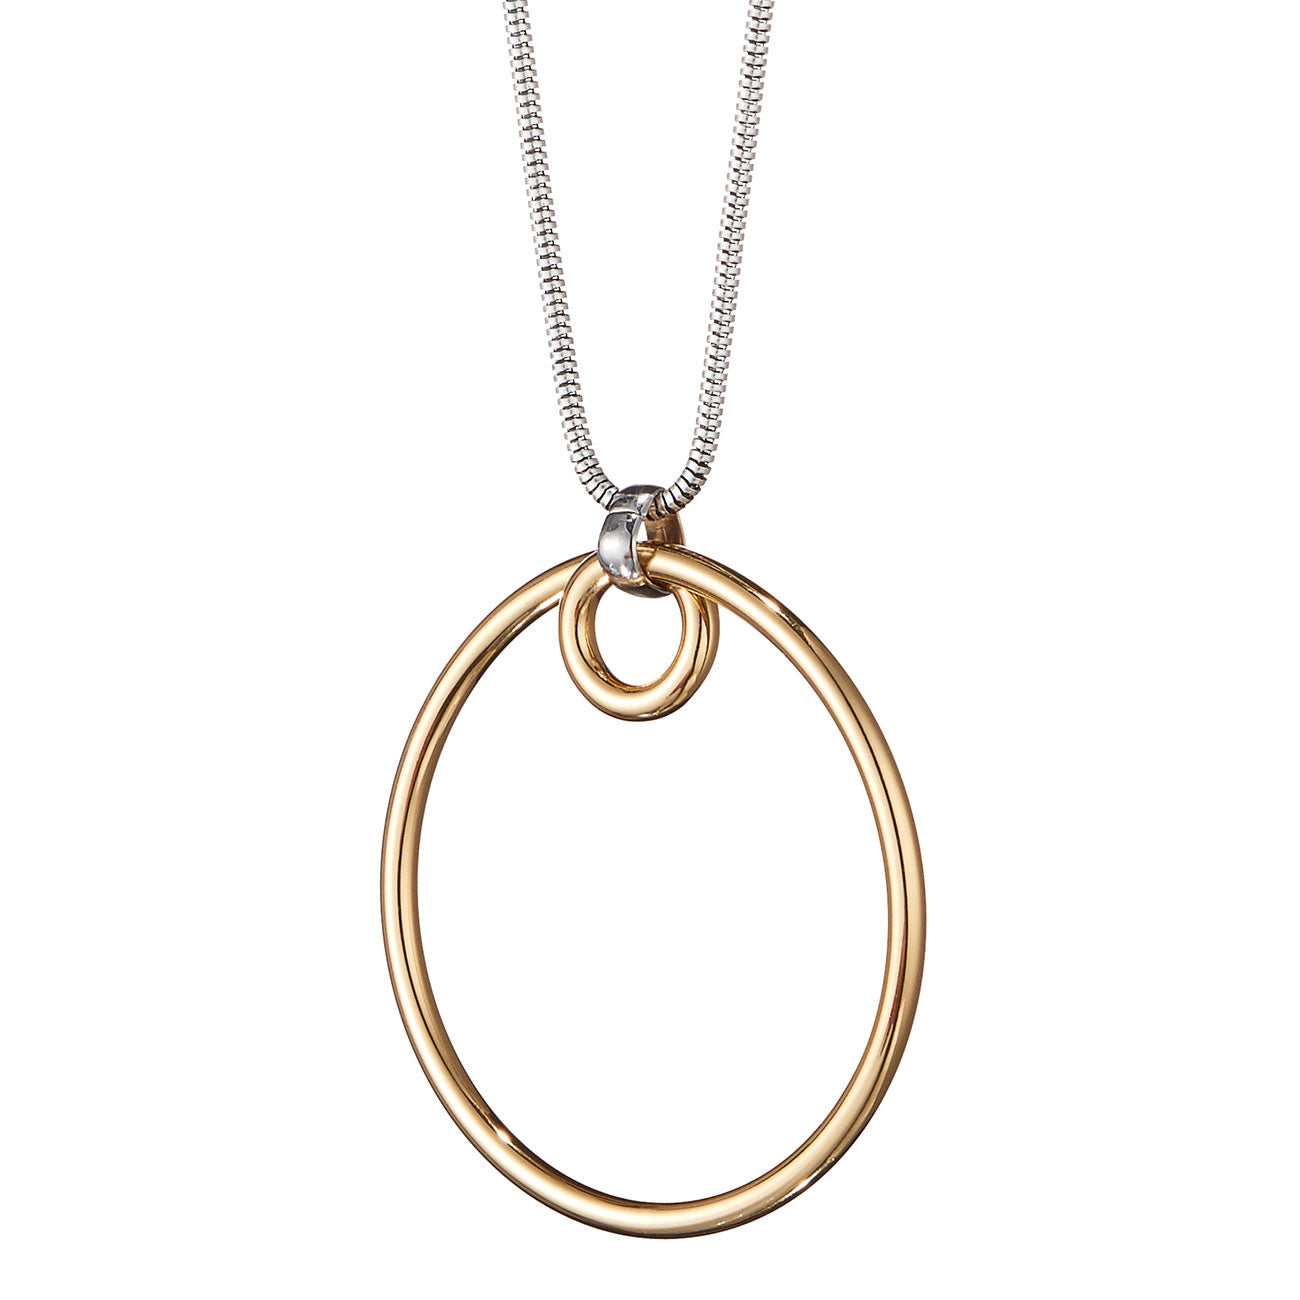 The Loop Pendant by Jenny Bird in Two-Tone